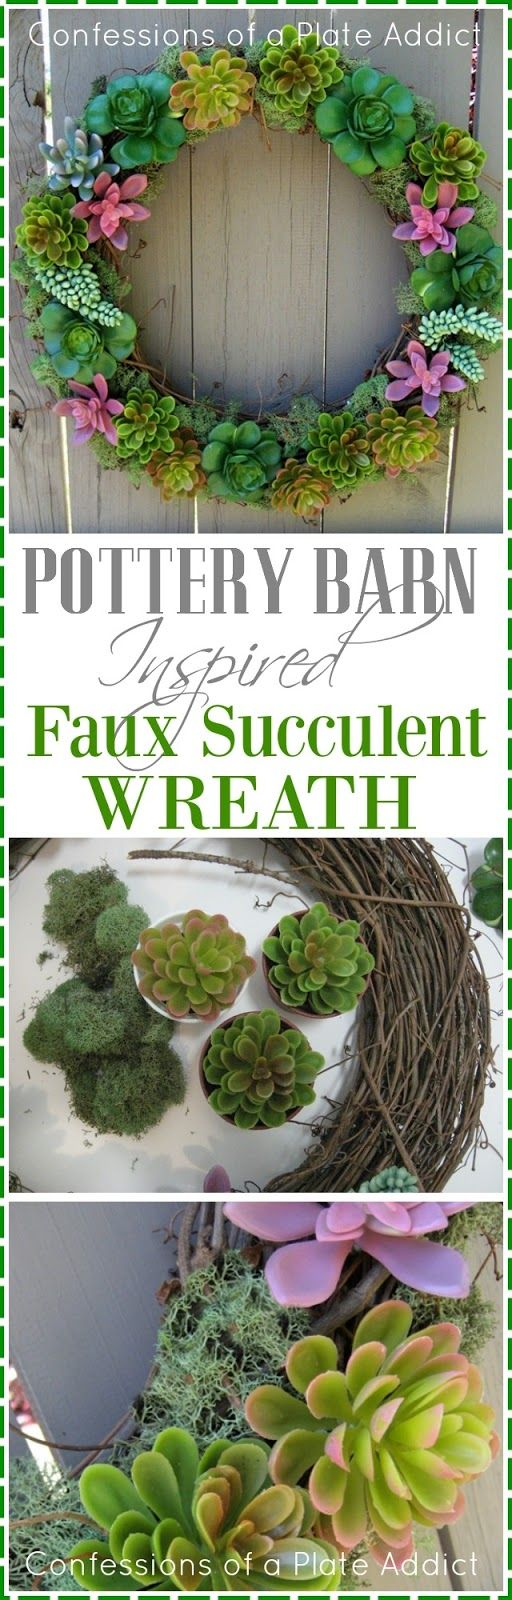 CONFESSIONS OF A PLATE ADDICT Pottery Barn Inspired Faux Succulent Wreath